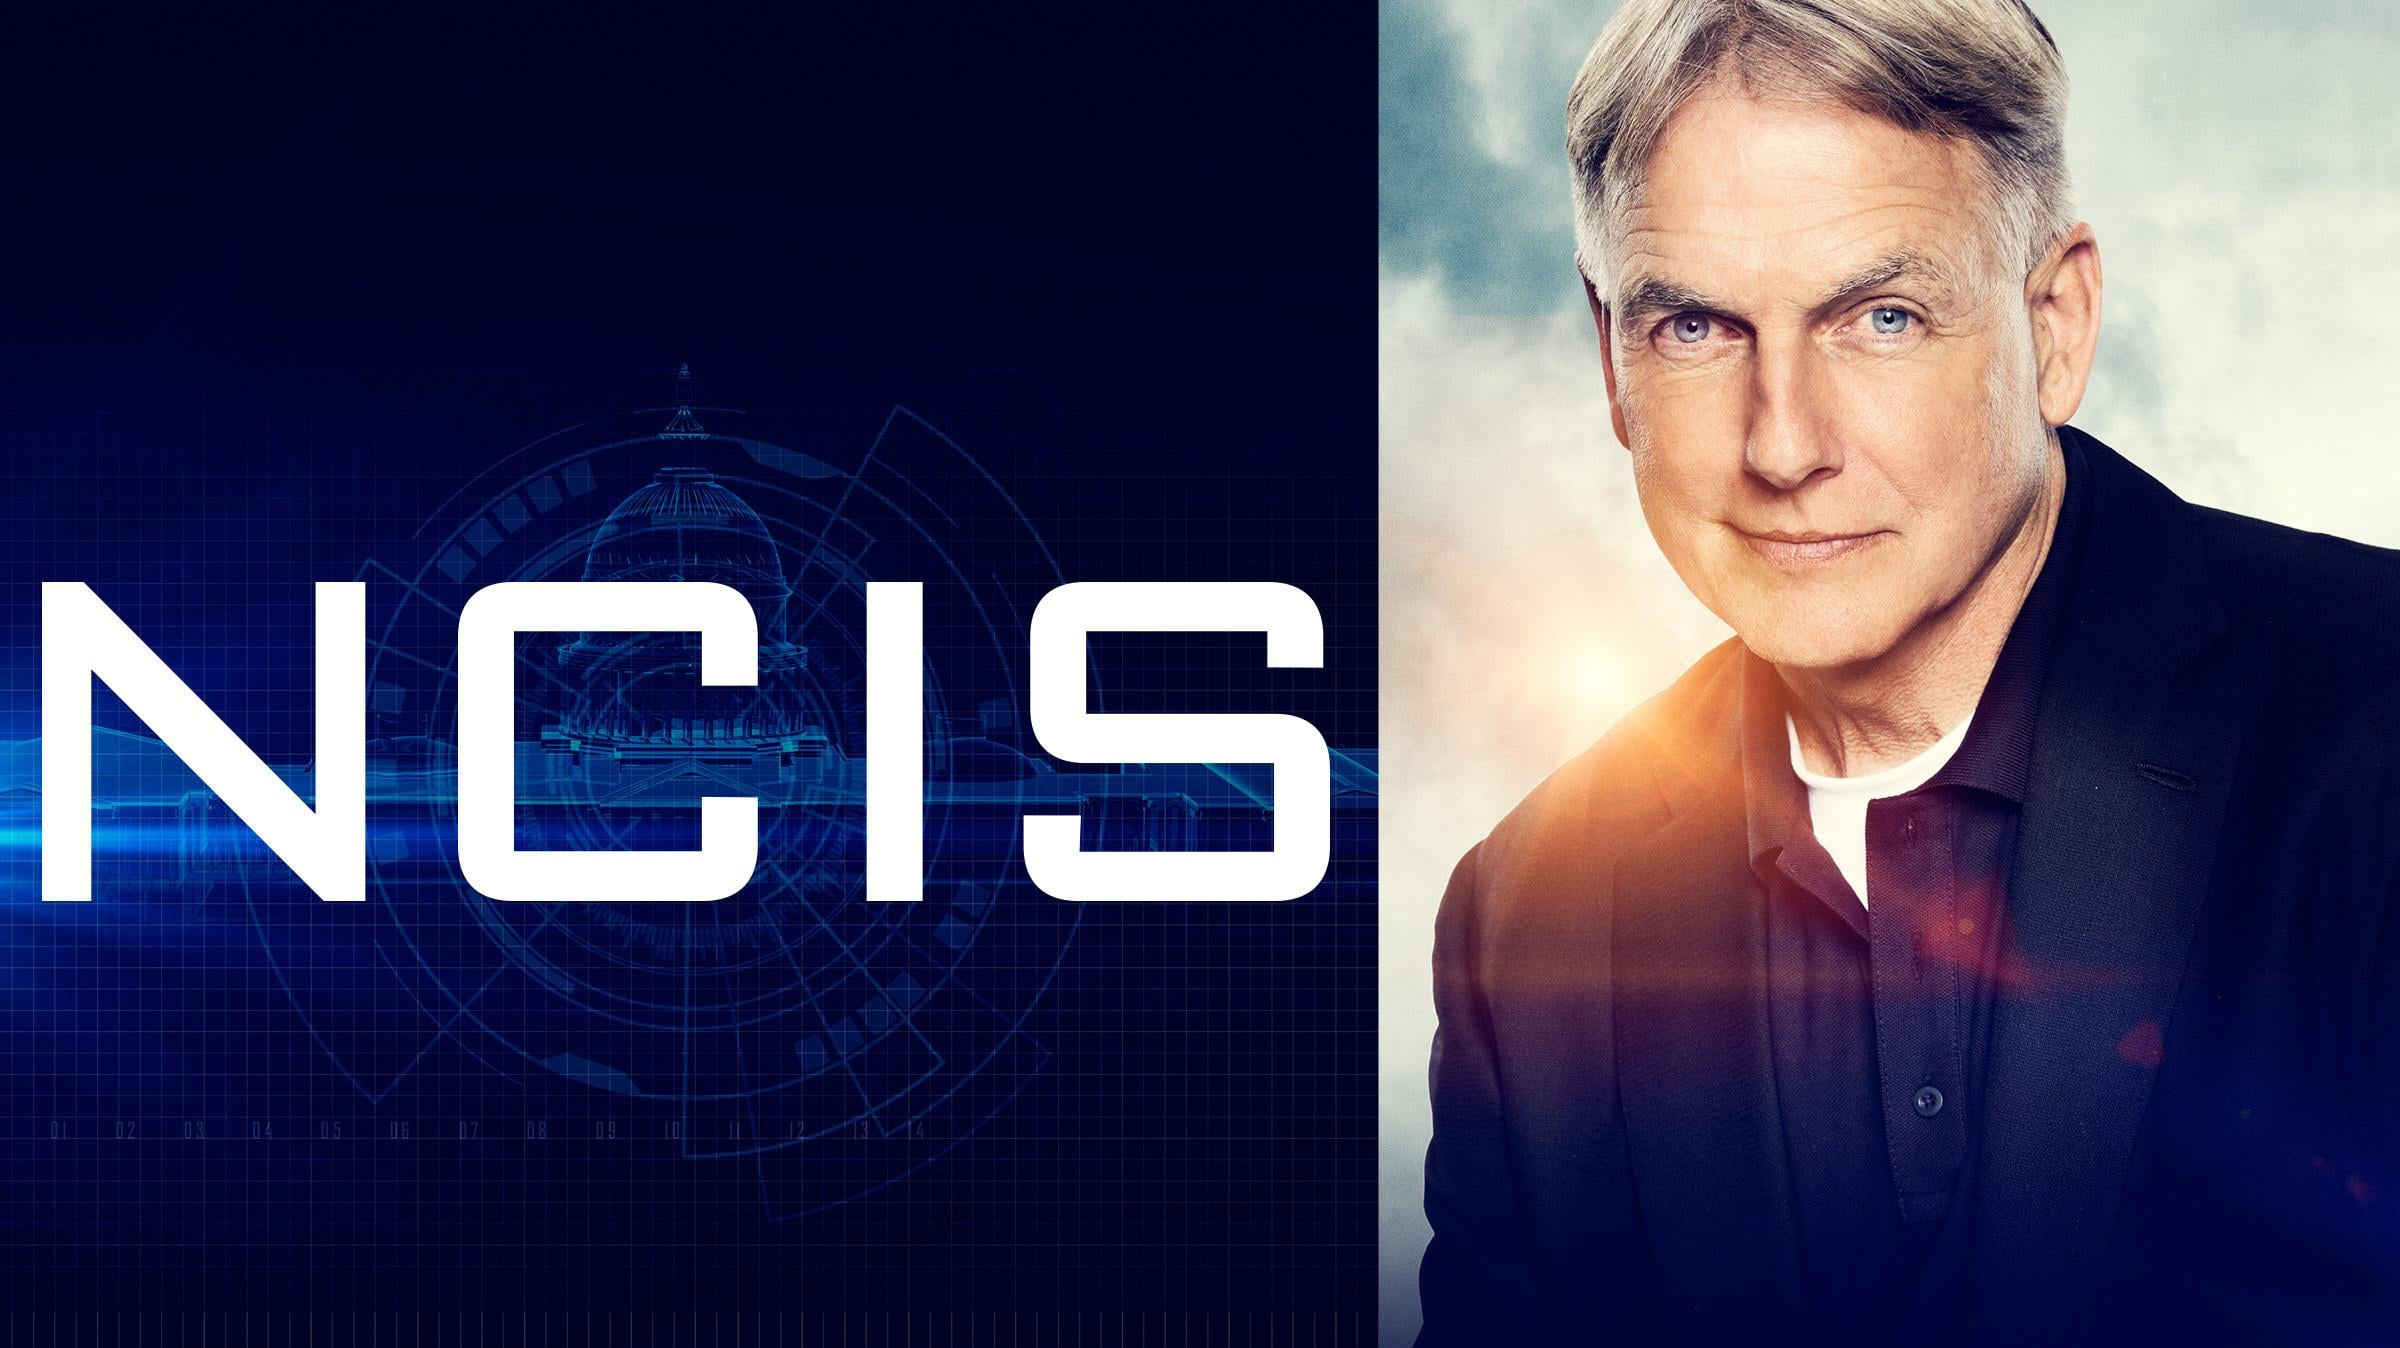 NCIS - Season 0 Episode 27 : Picture Perfect: The Looks of N.C.I.S